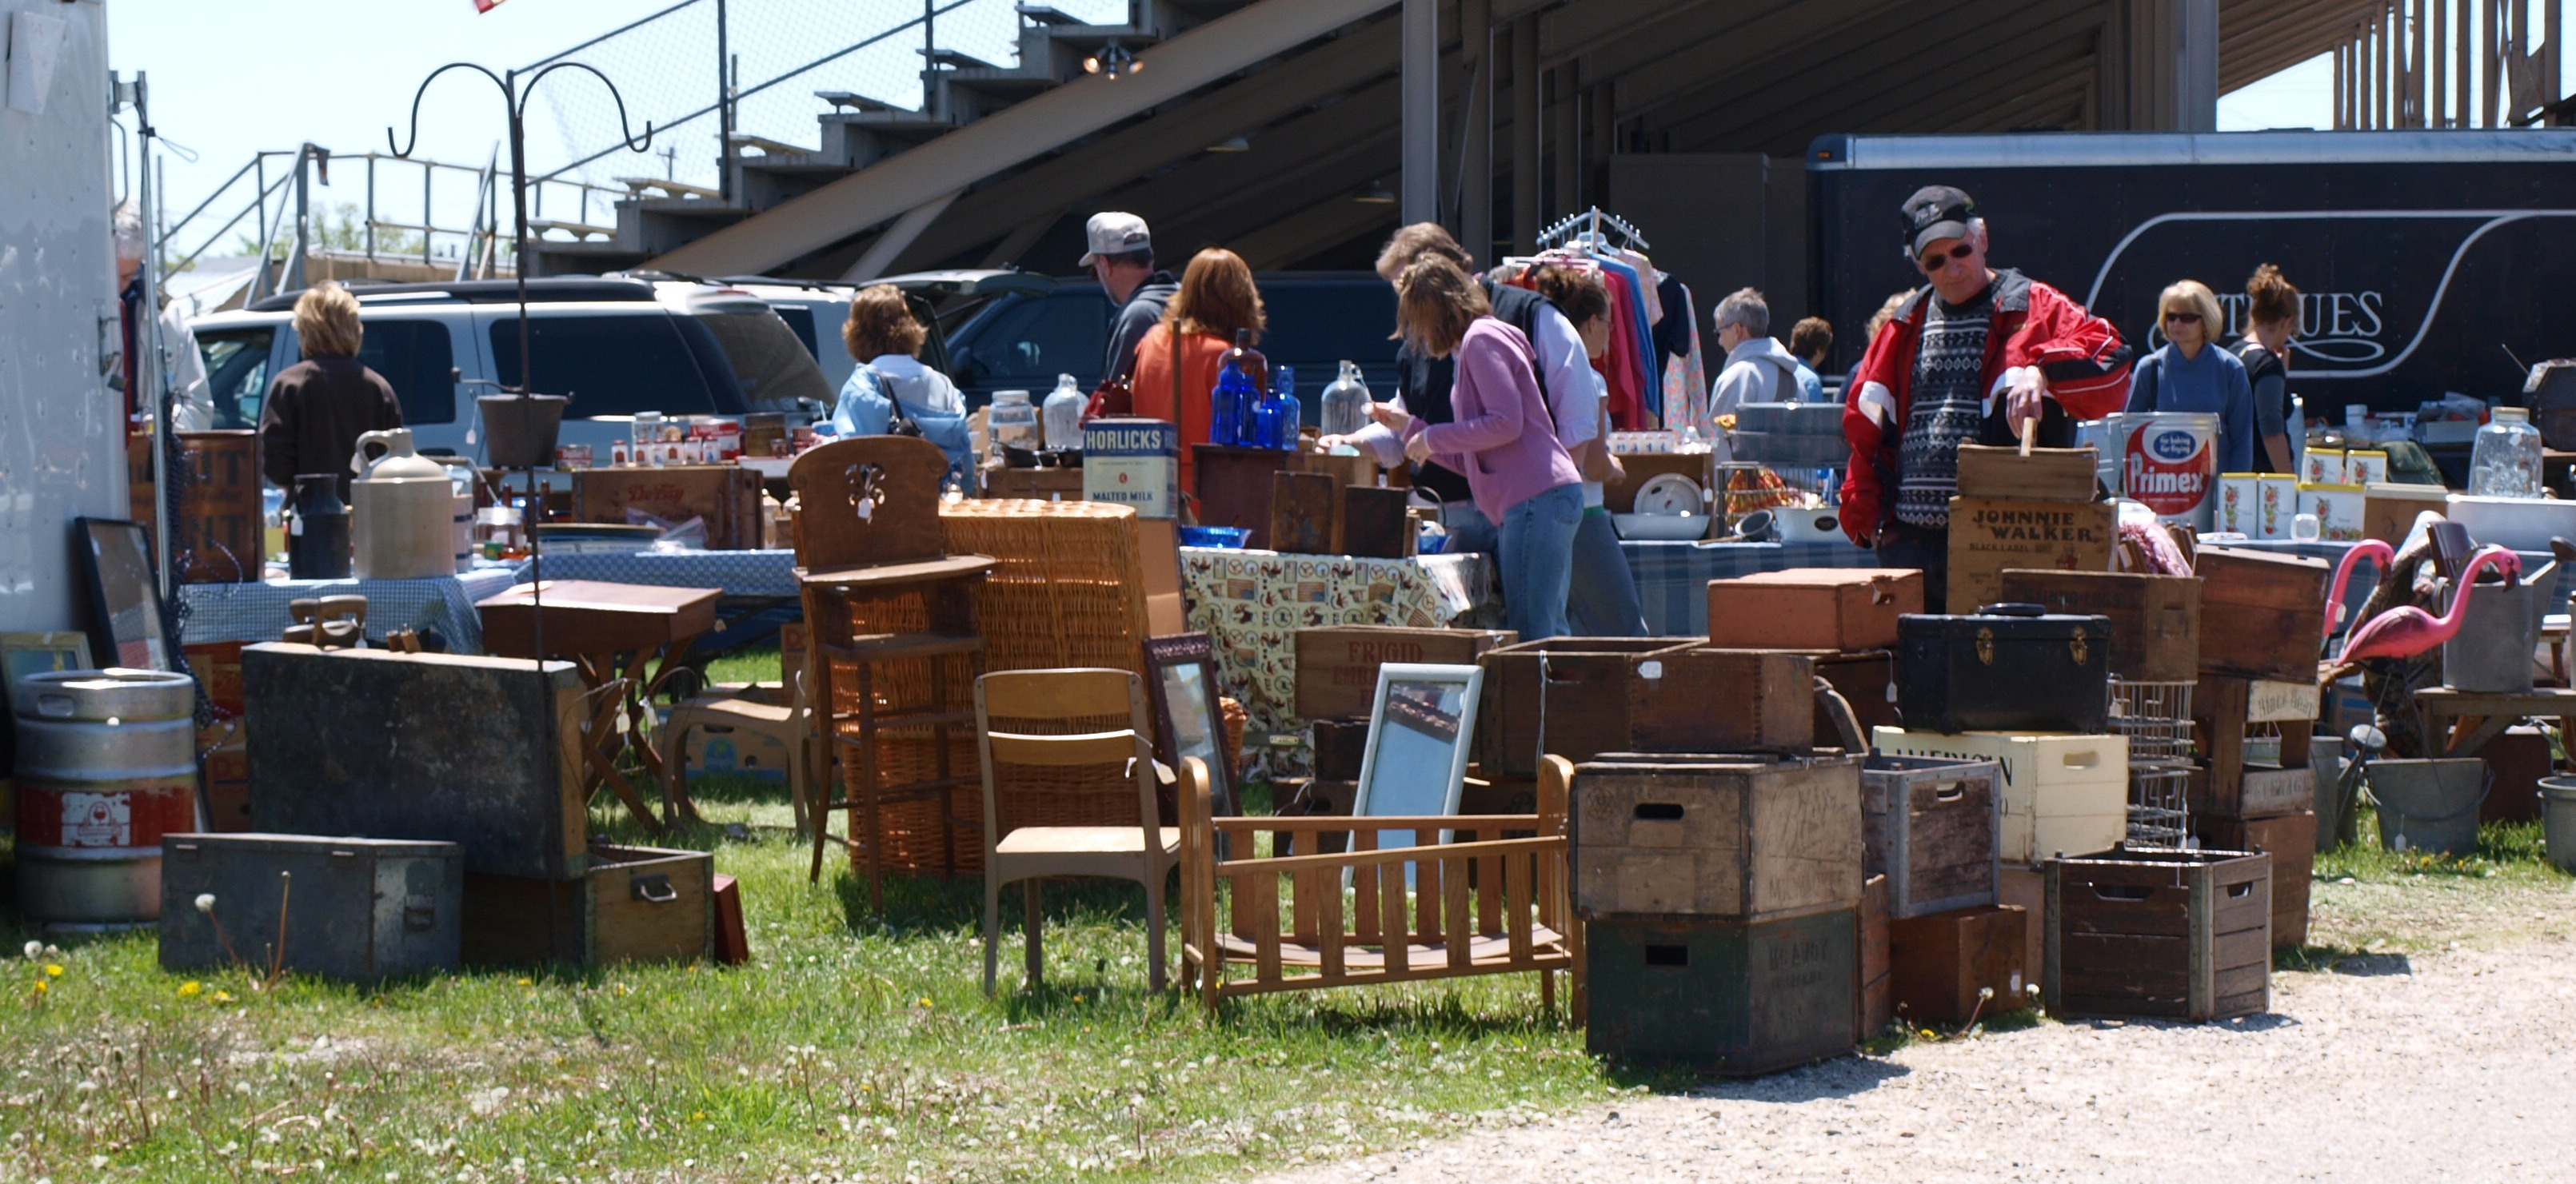 flea market Seller information want to sell at the flea market anyone can setup here's how: no reservation is necessary, just show up we open at 5am, and recommend coming by 7am.